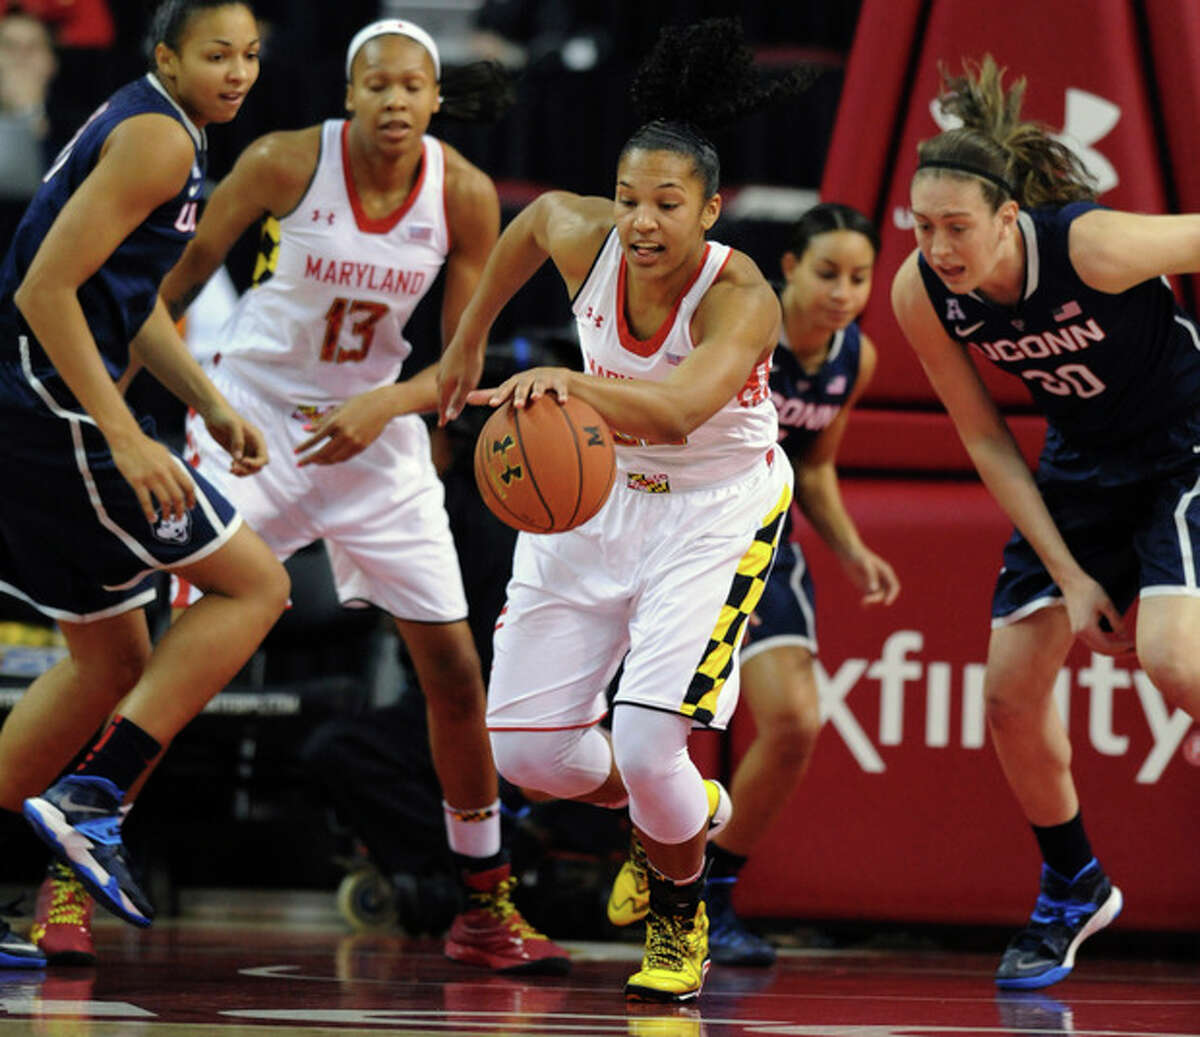 Maryland's Alyssa Thomas, center, grabs a rebound ahead of Connecticut's Breanna Stewart, right, in the first half of an NCAA basketball game Friday, Nov. 15, 2013 in College Park, Md.(AP Photo/Gail Burton)